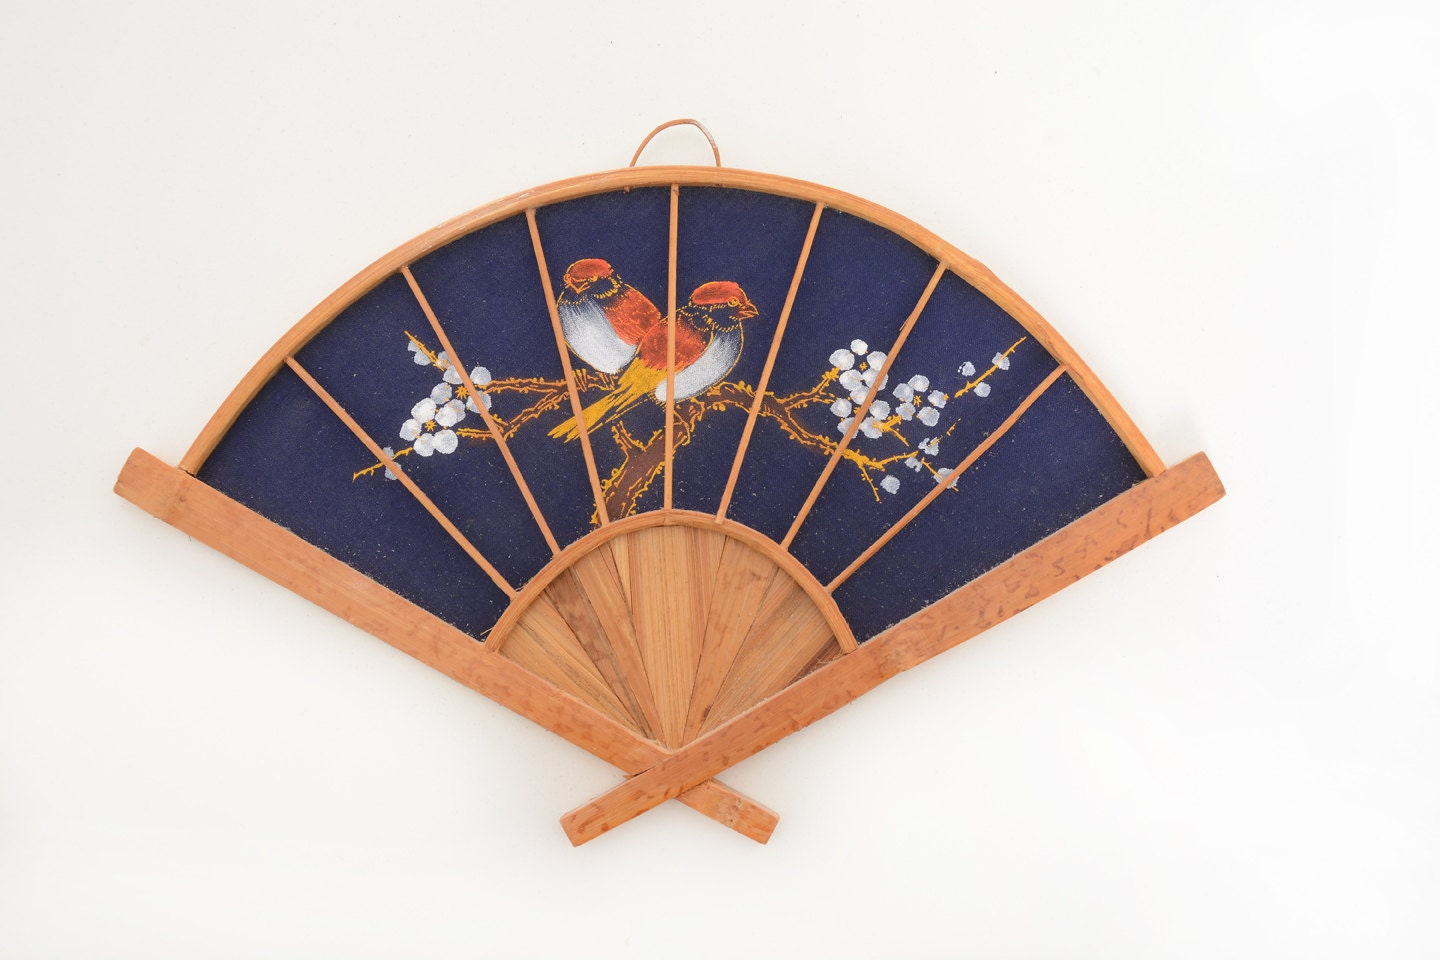 Vintage Wall Decor Fan Vintage Decor Fan By Brocantebcn On